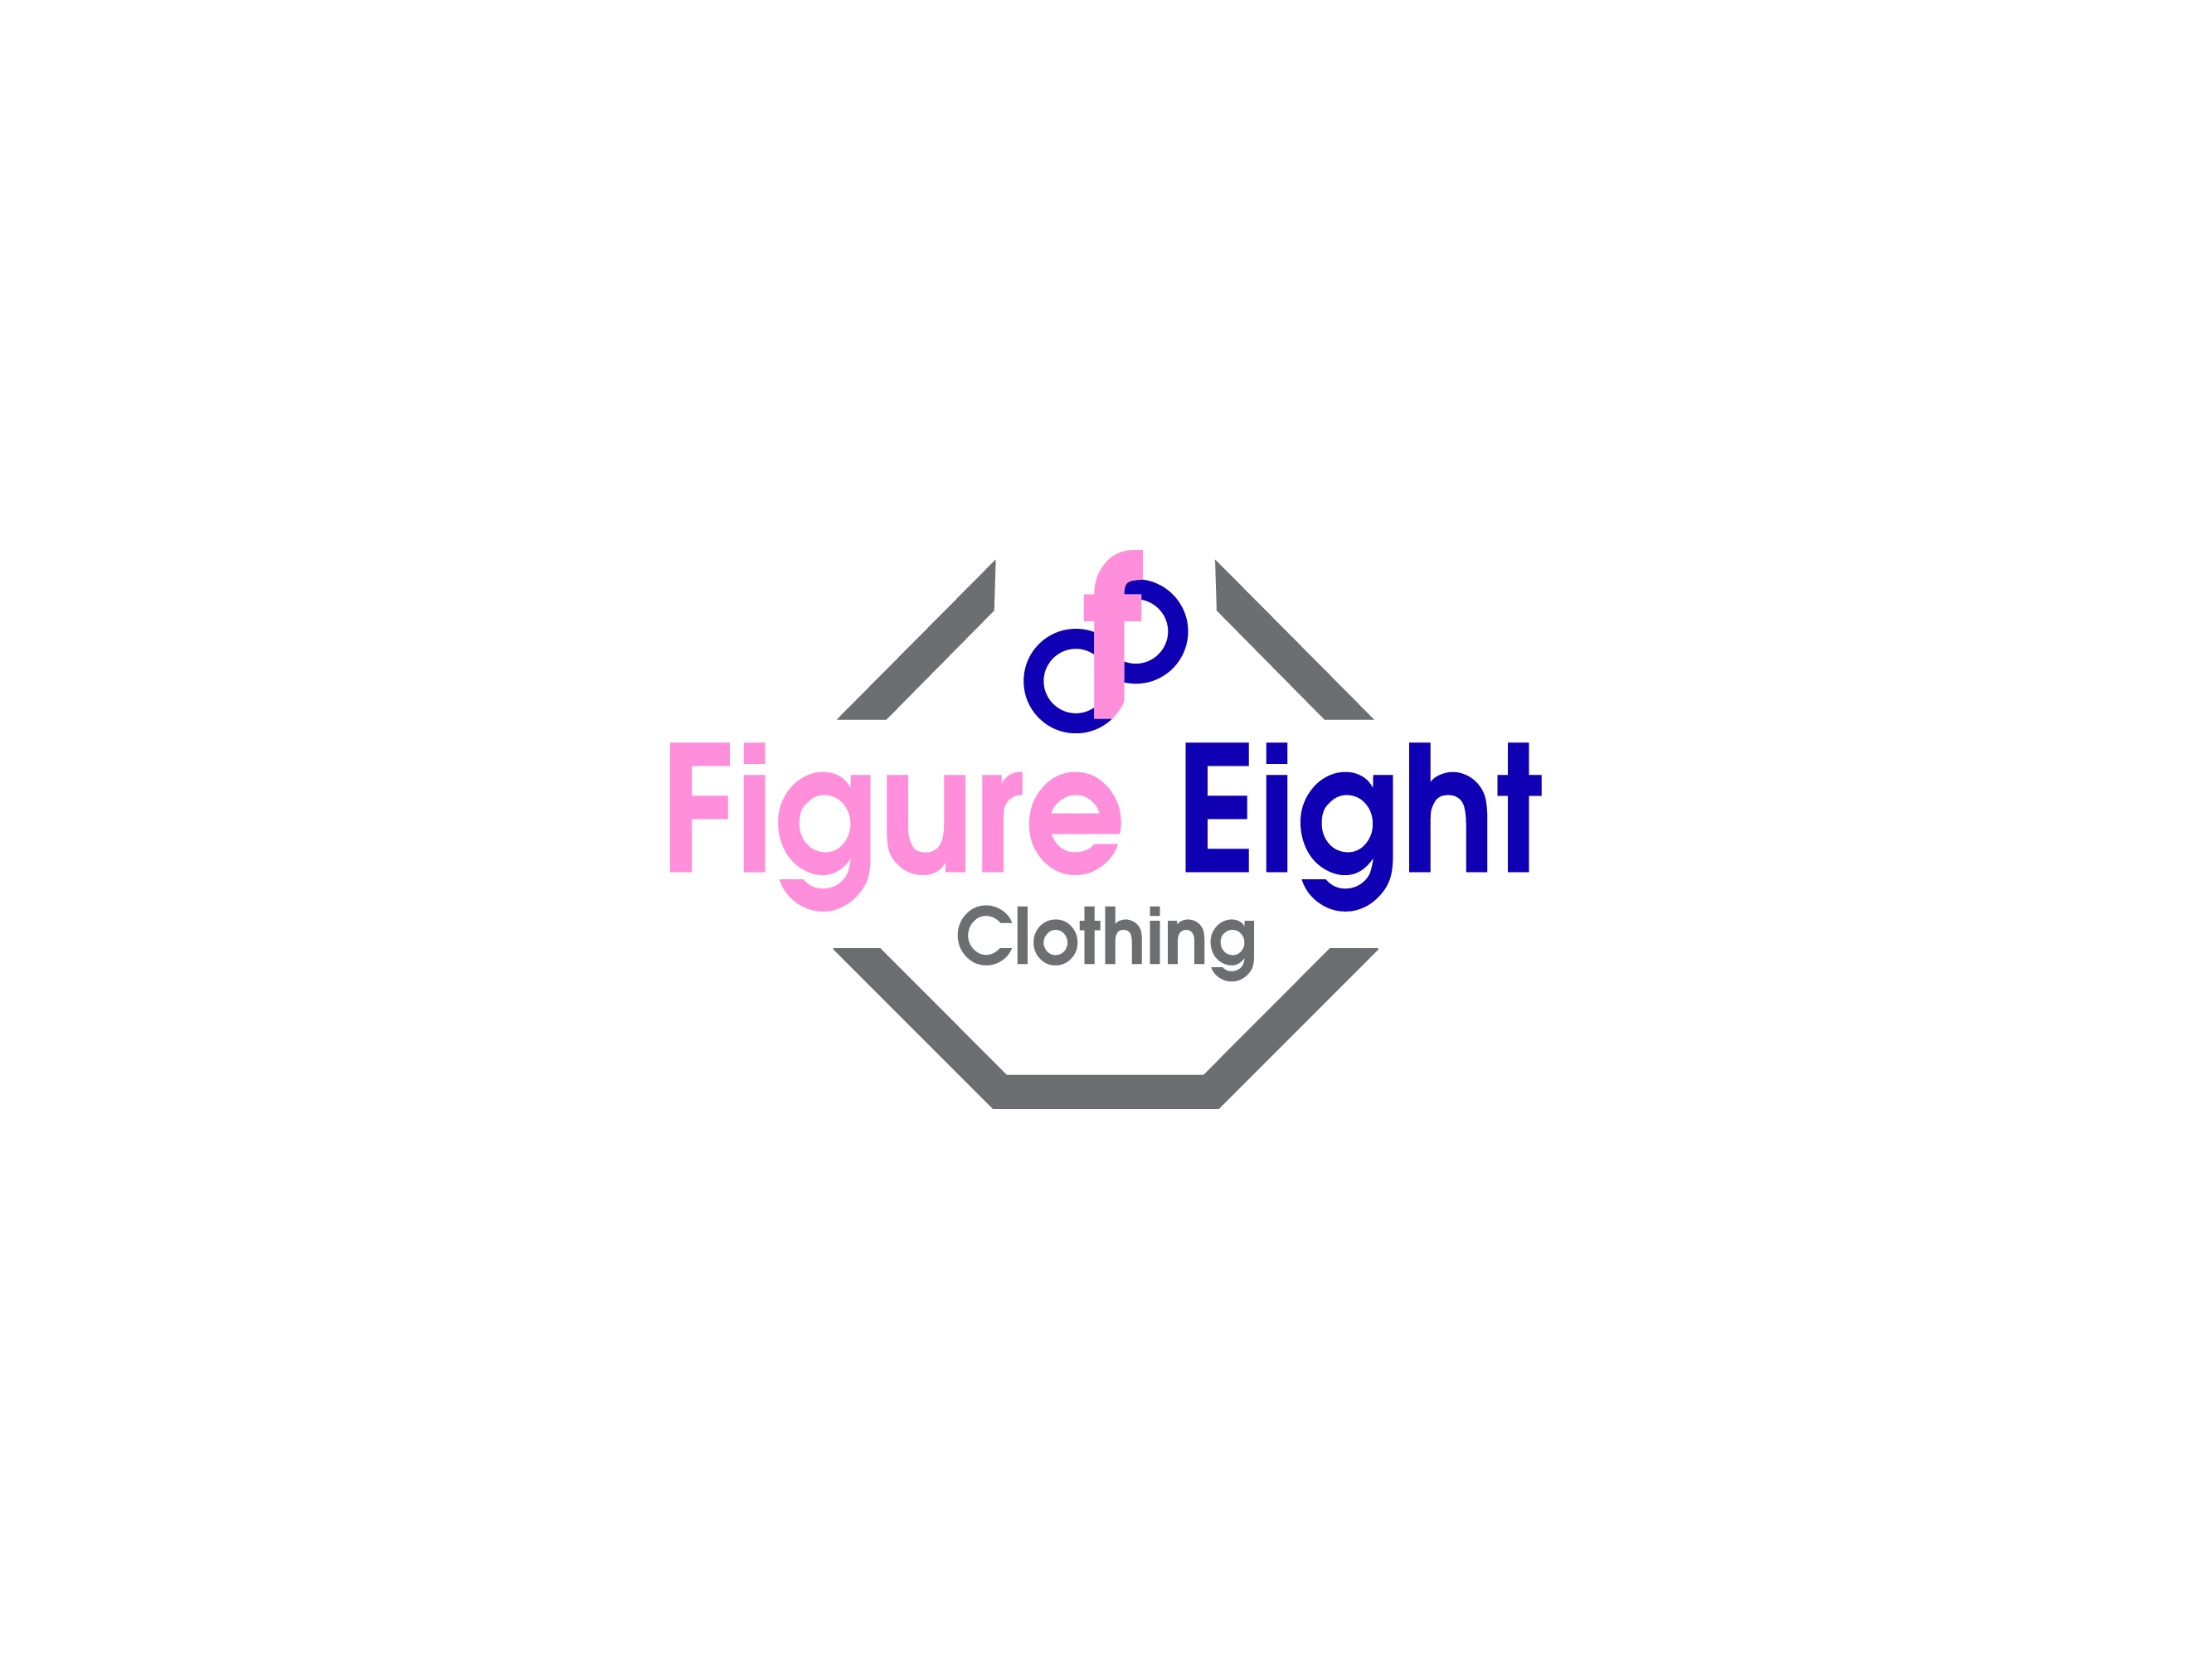 Logo Design by iRishi - Entry No. 87 in the Logo Design Contest Artistic Logo Design for Figure Eight Clothing.